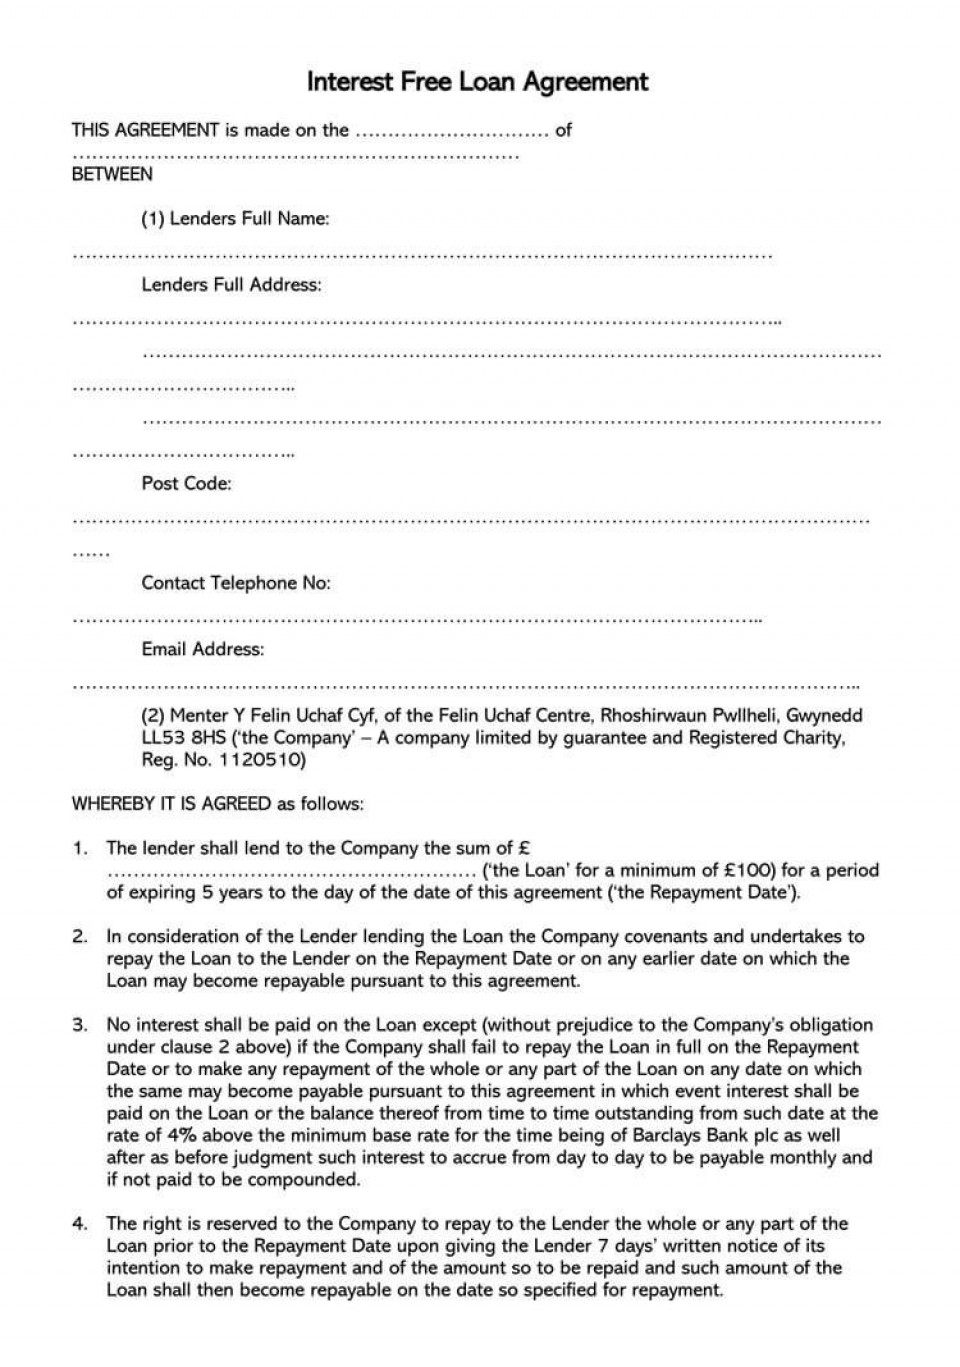 003 Rare Loan Agreement Template Free Image  Wording Family Uk Personal Australia960